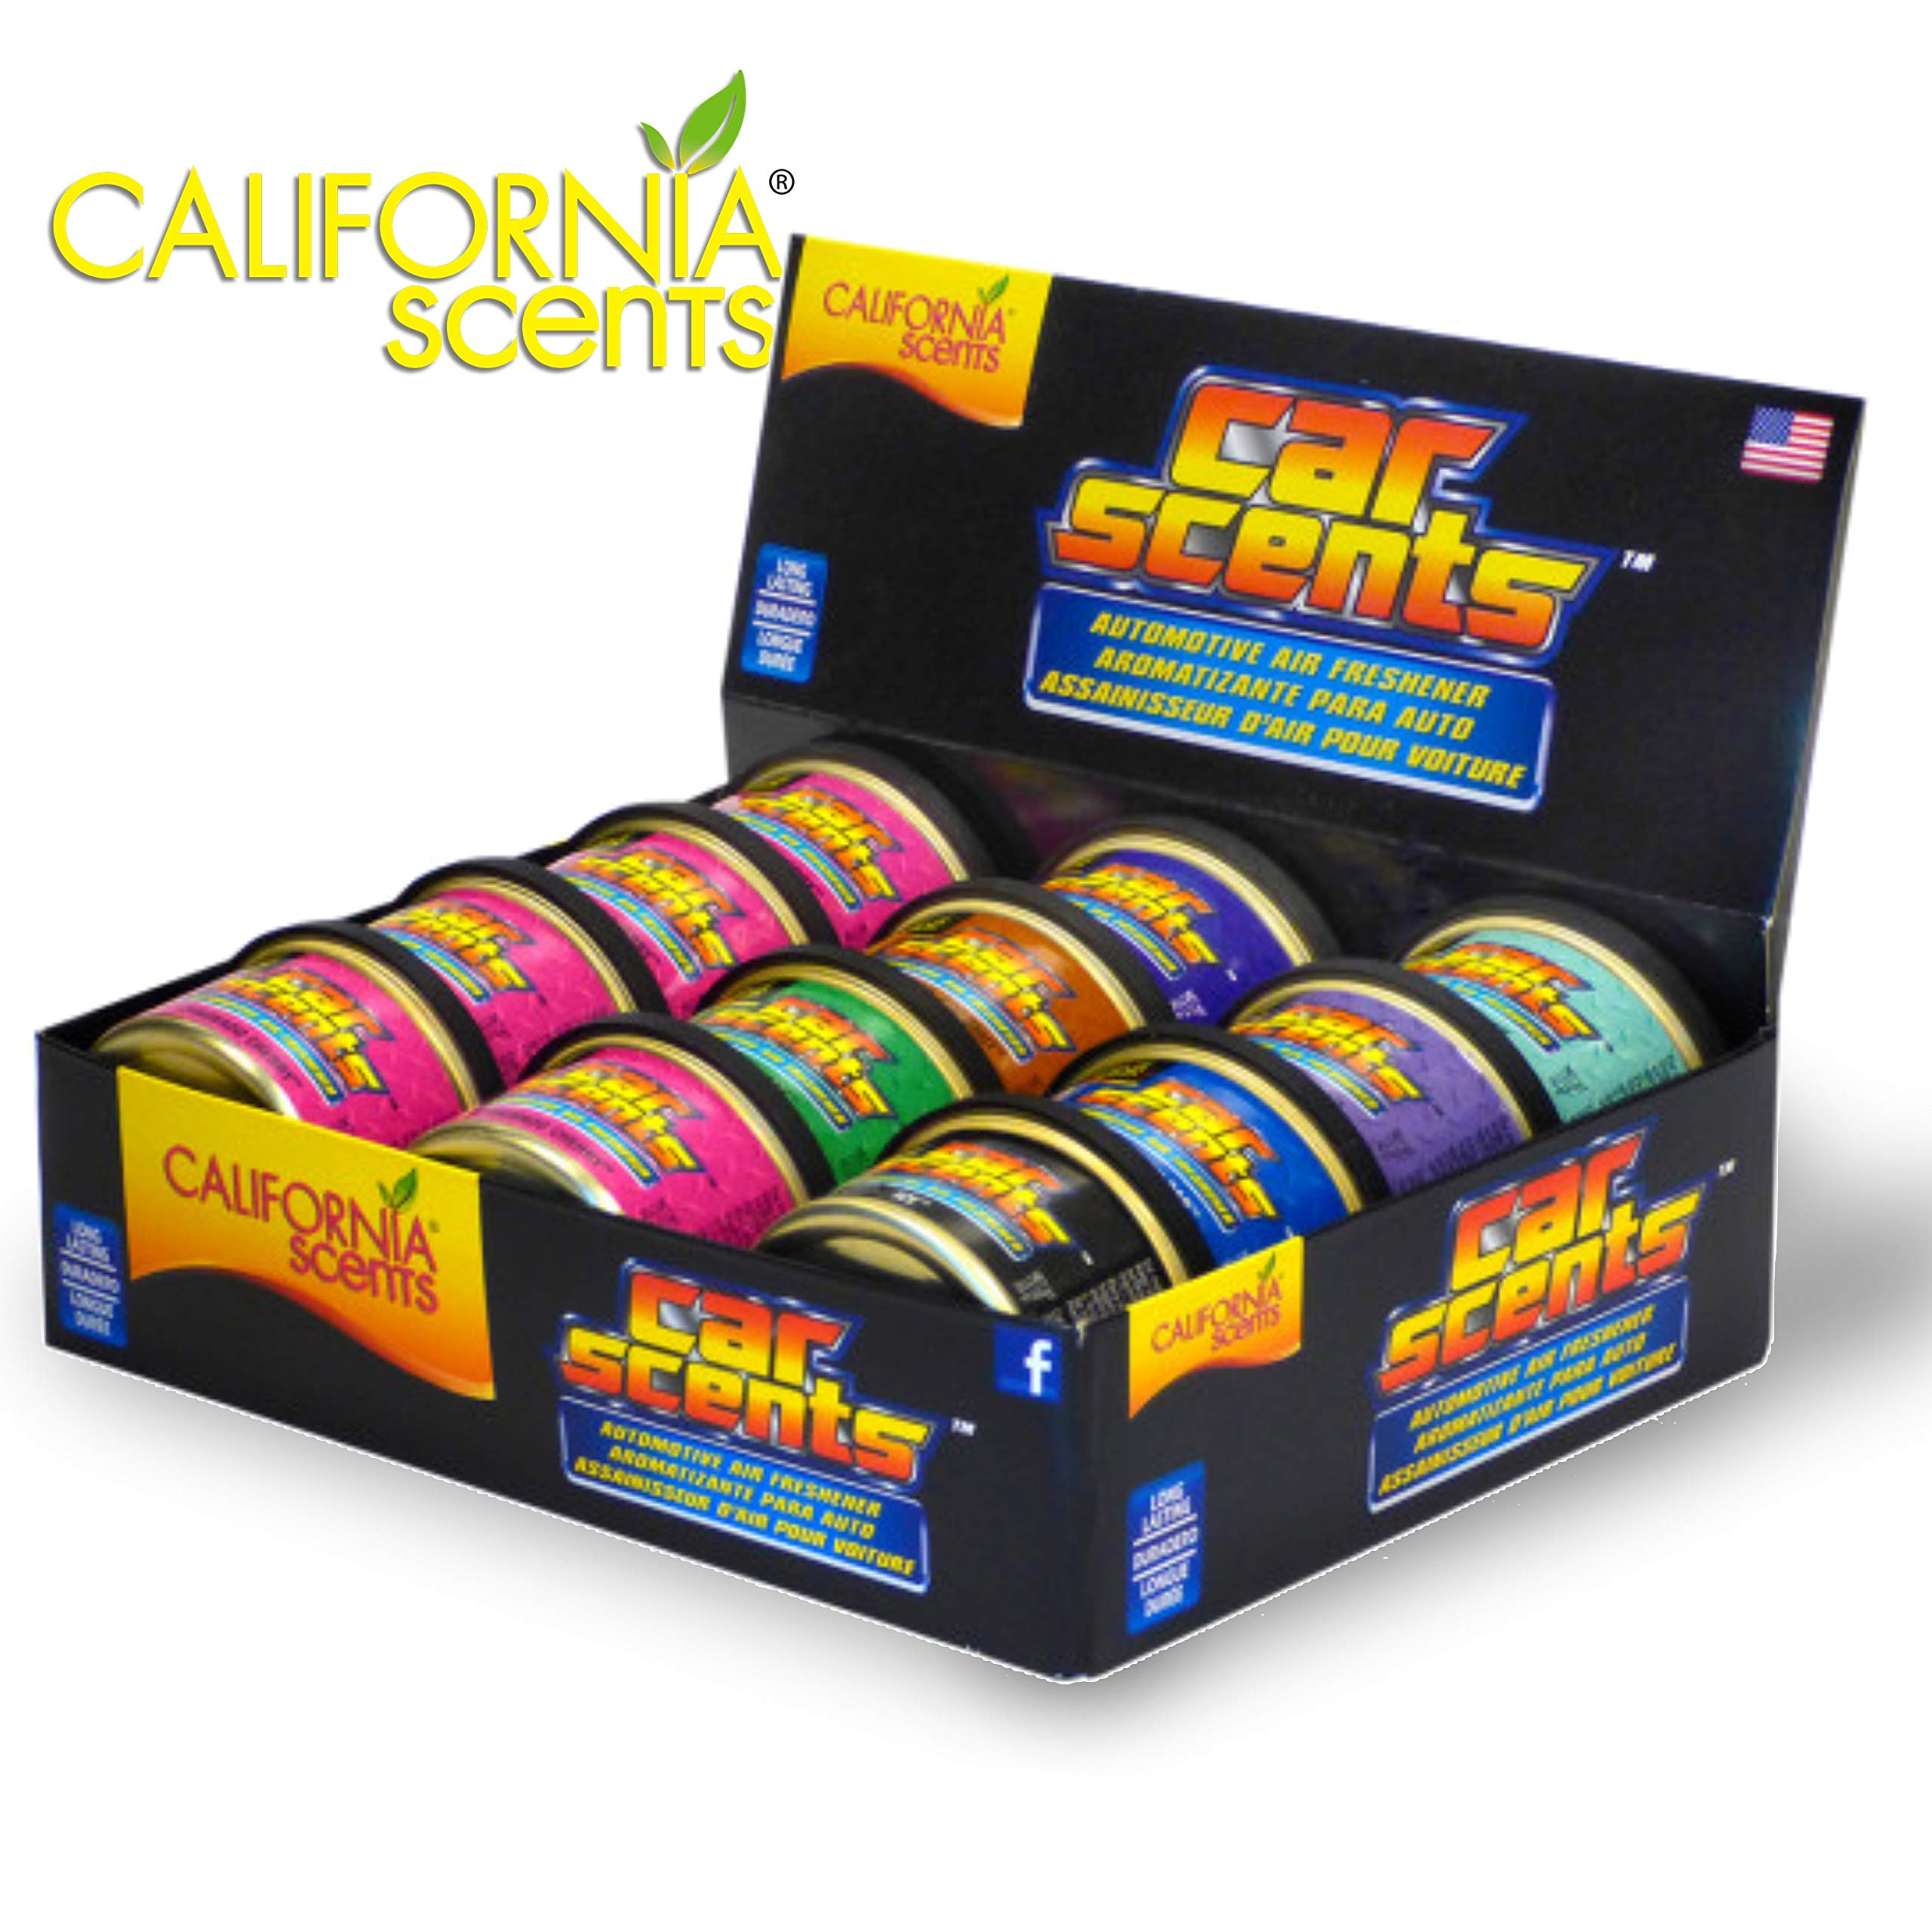 California Scents California Car Scents, Car Air Freshener & Fragrance, Long-Lasting Fresh Scents, 1.5 oz. Cans (12 Count) by California Scents